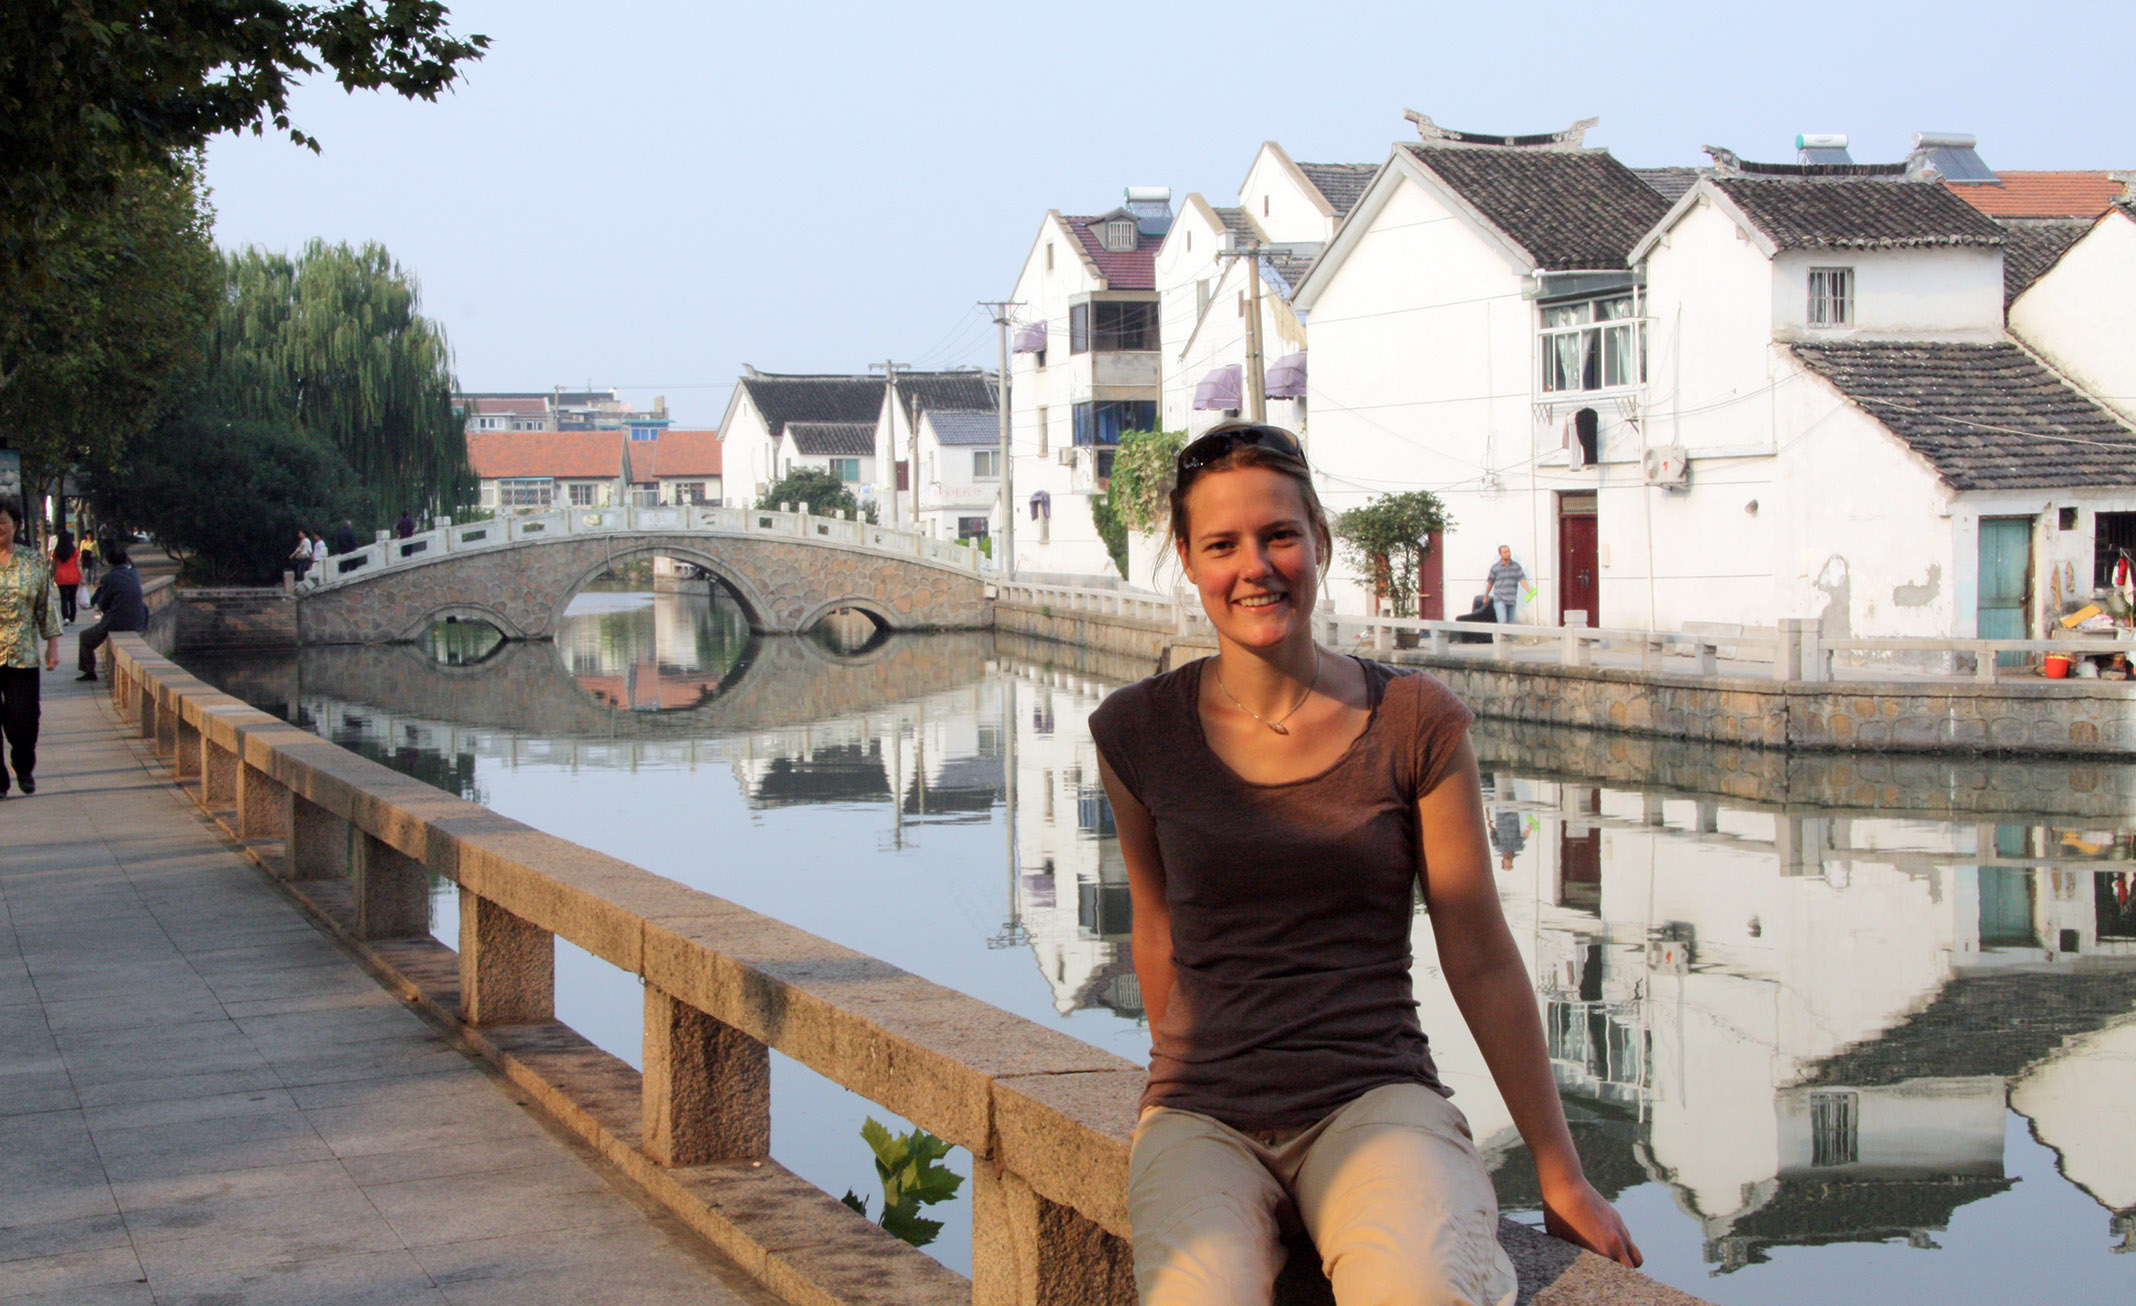 Streets_Water_Silja_01.jpg - Suzhou: A canal, and Silja... Kind of little Venice...